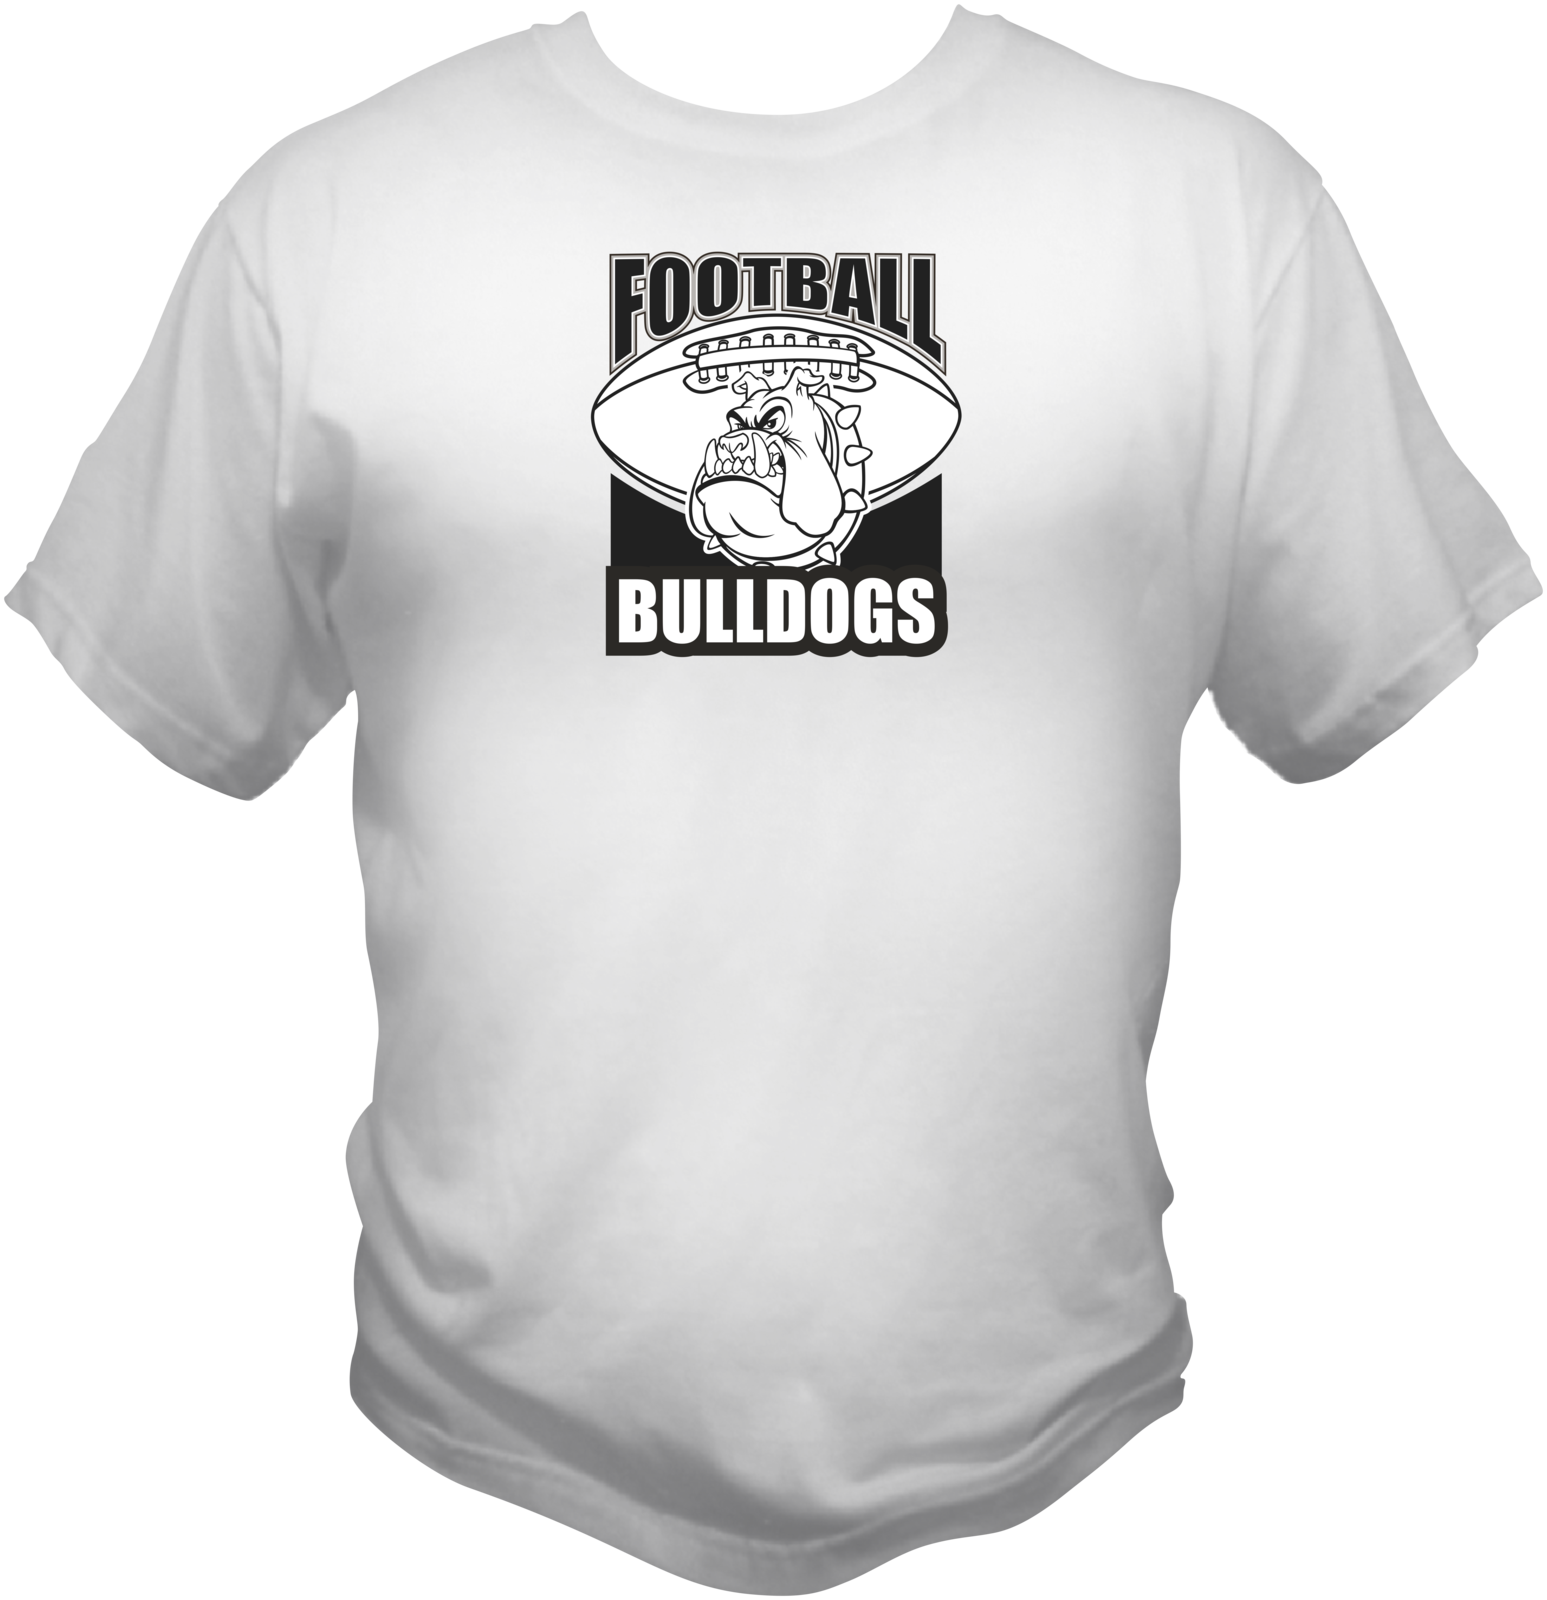 Football bulldogs white